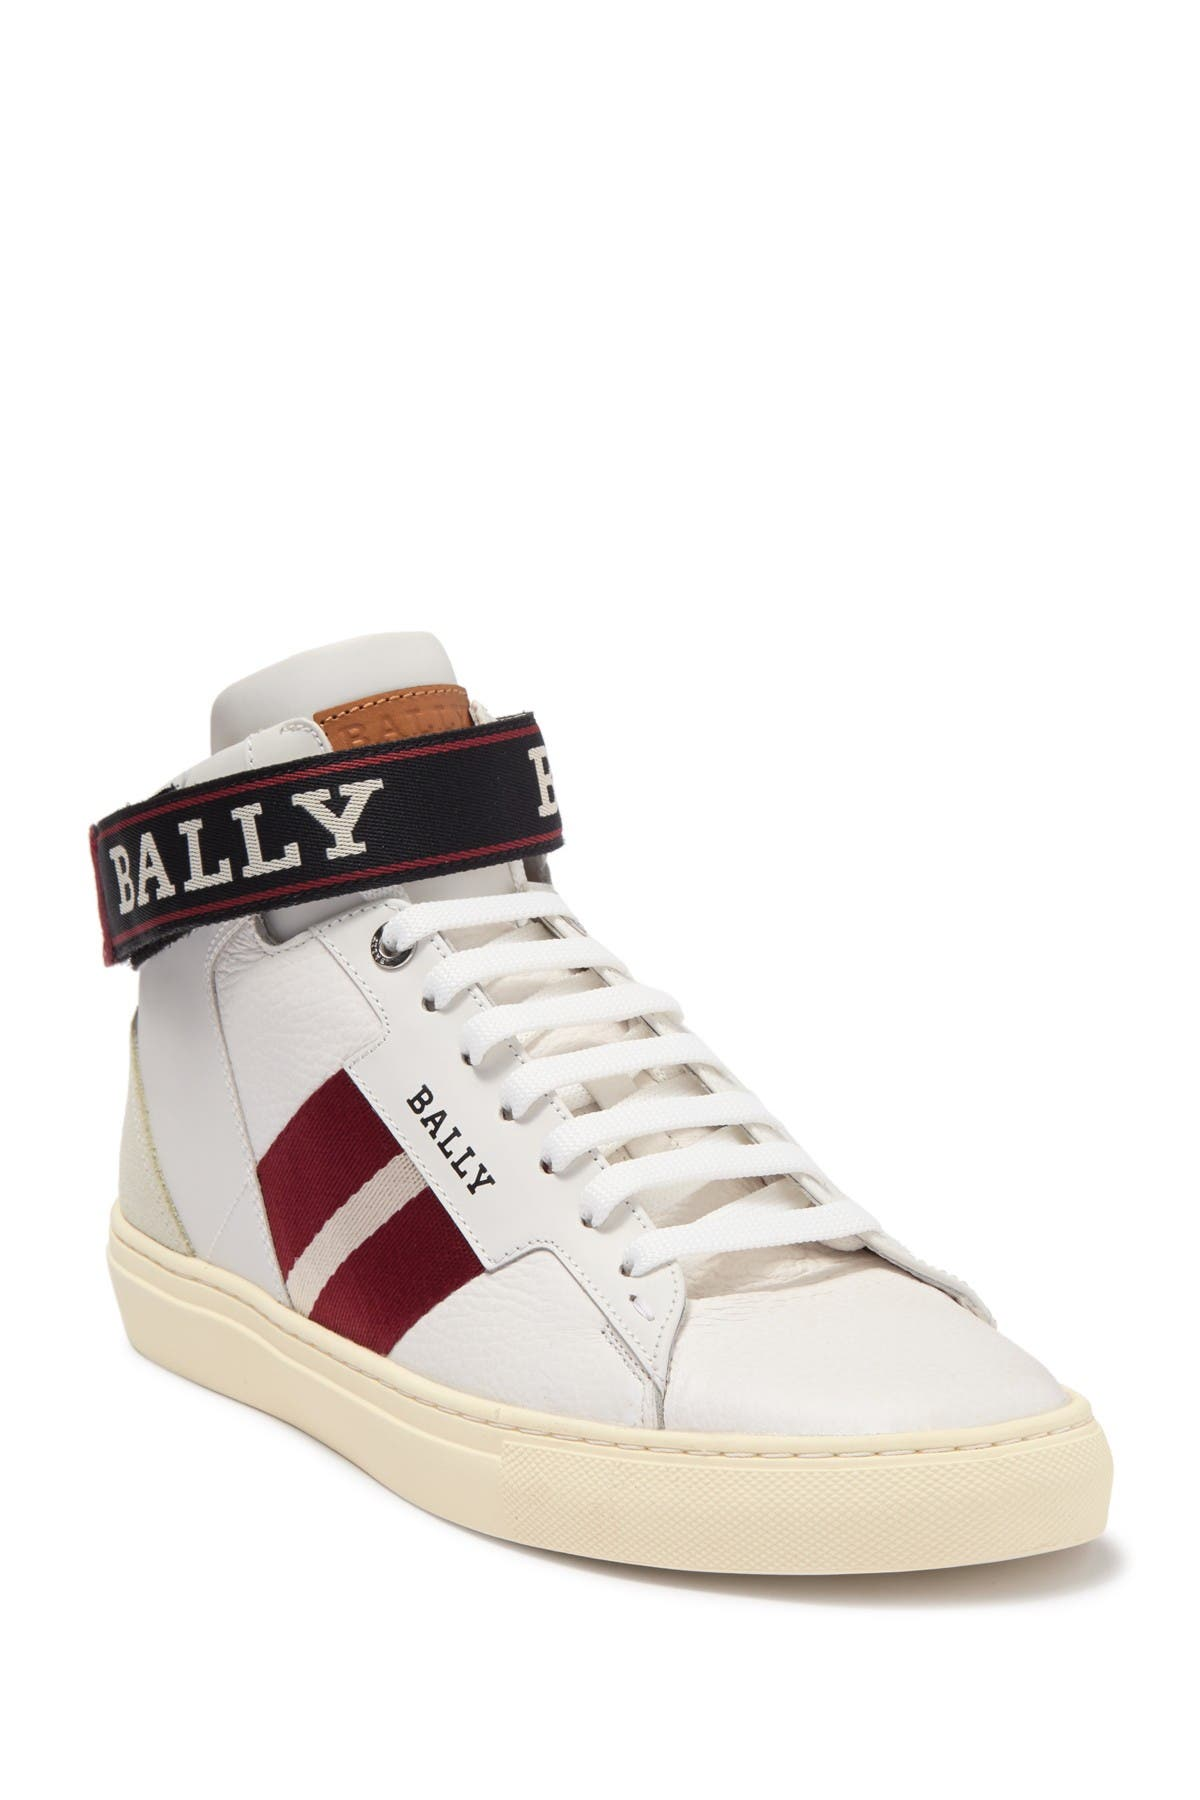 BALLY | Heros Leather High Top Sneaker